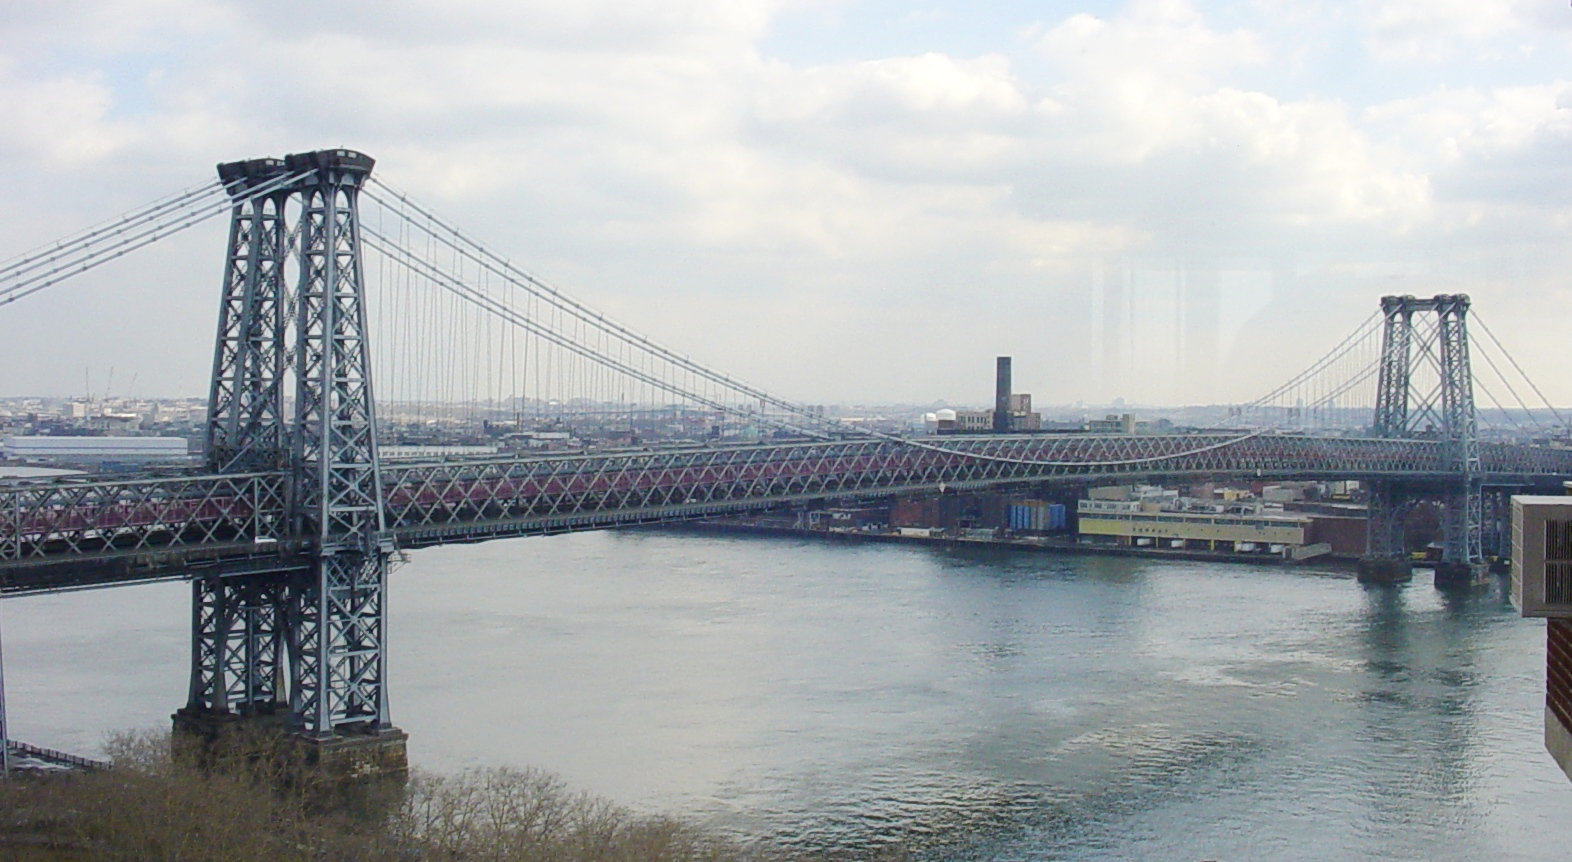 https://upload.wikimedia.org/wikipedia/commons/e/e9/Above_Williamsburg_Bridge_crop.jpg